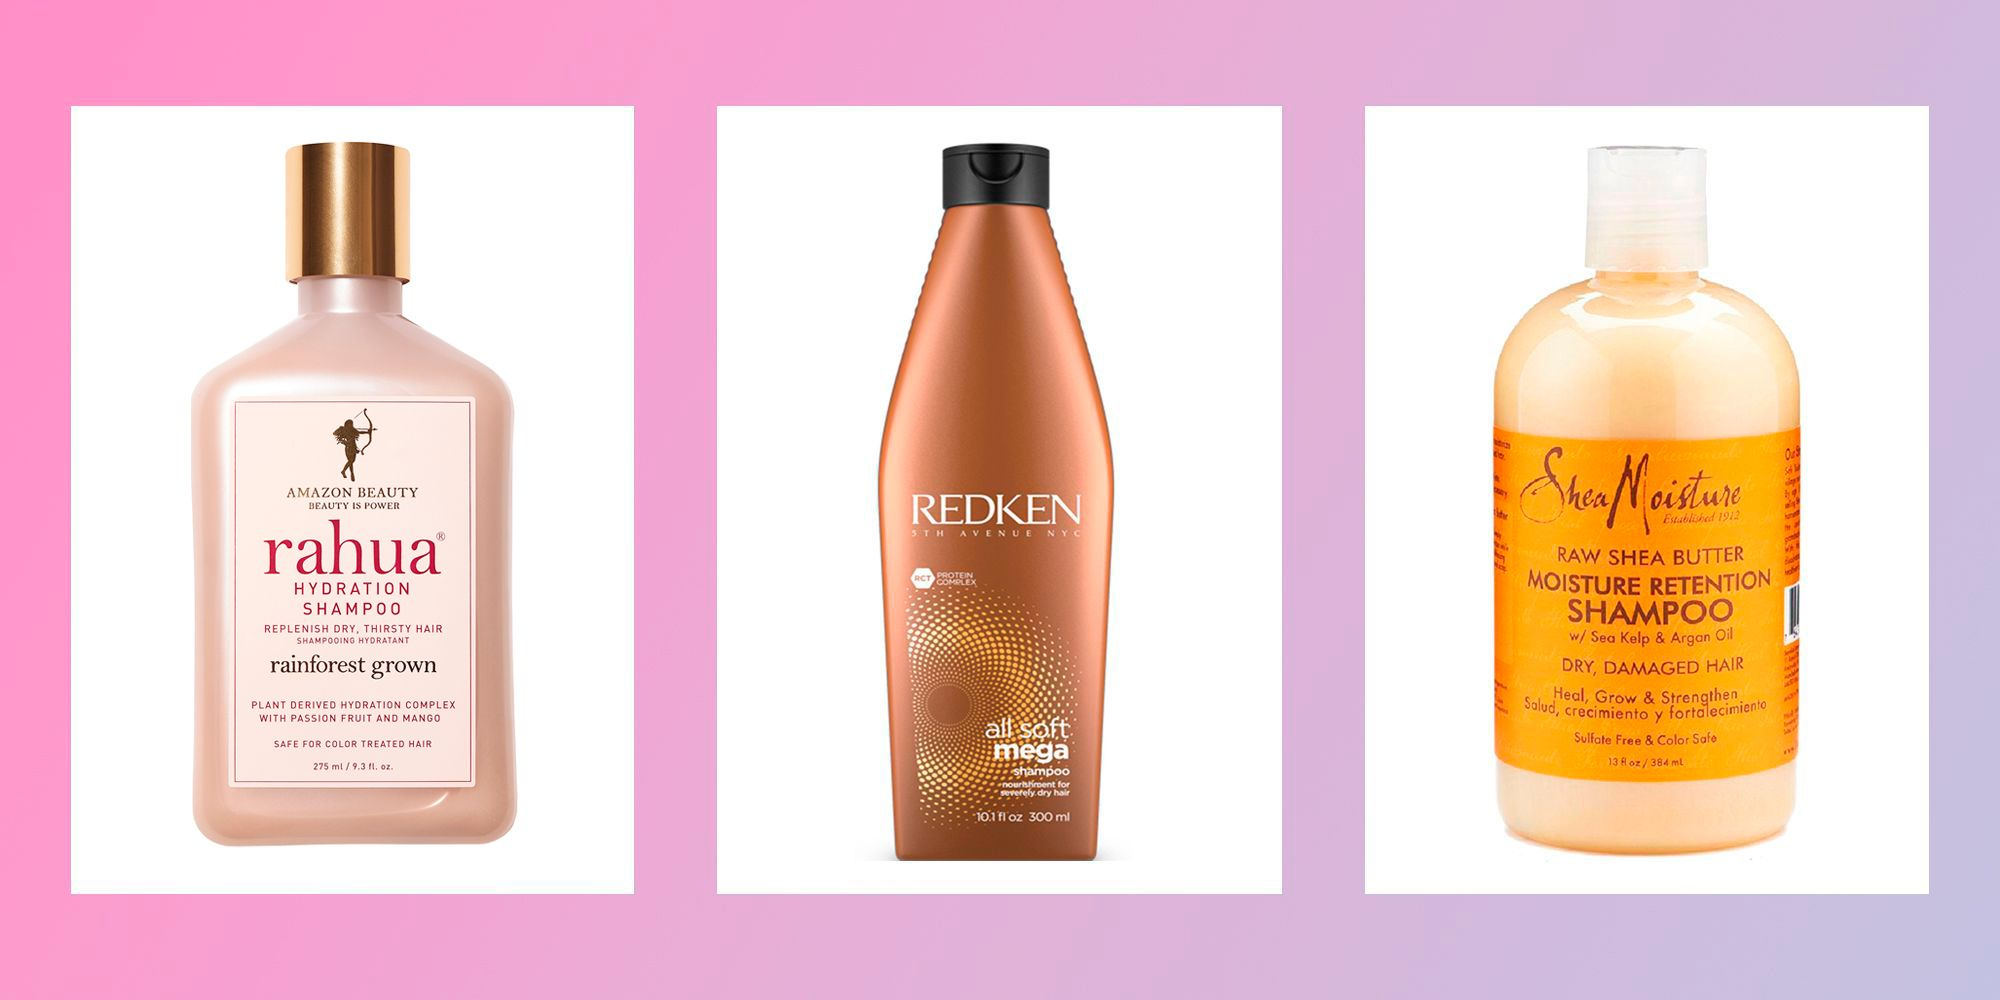 Best shampoo for dry hair 2019 - 9 Reviewed By Cosmo's Beauty Editor